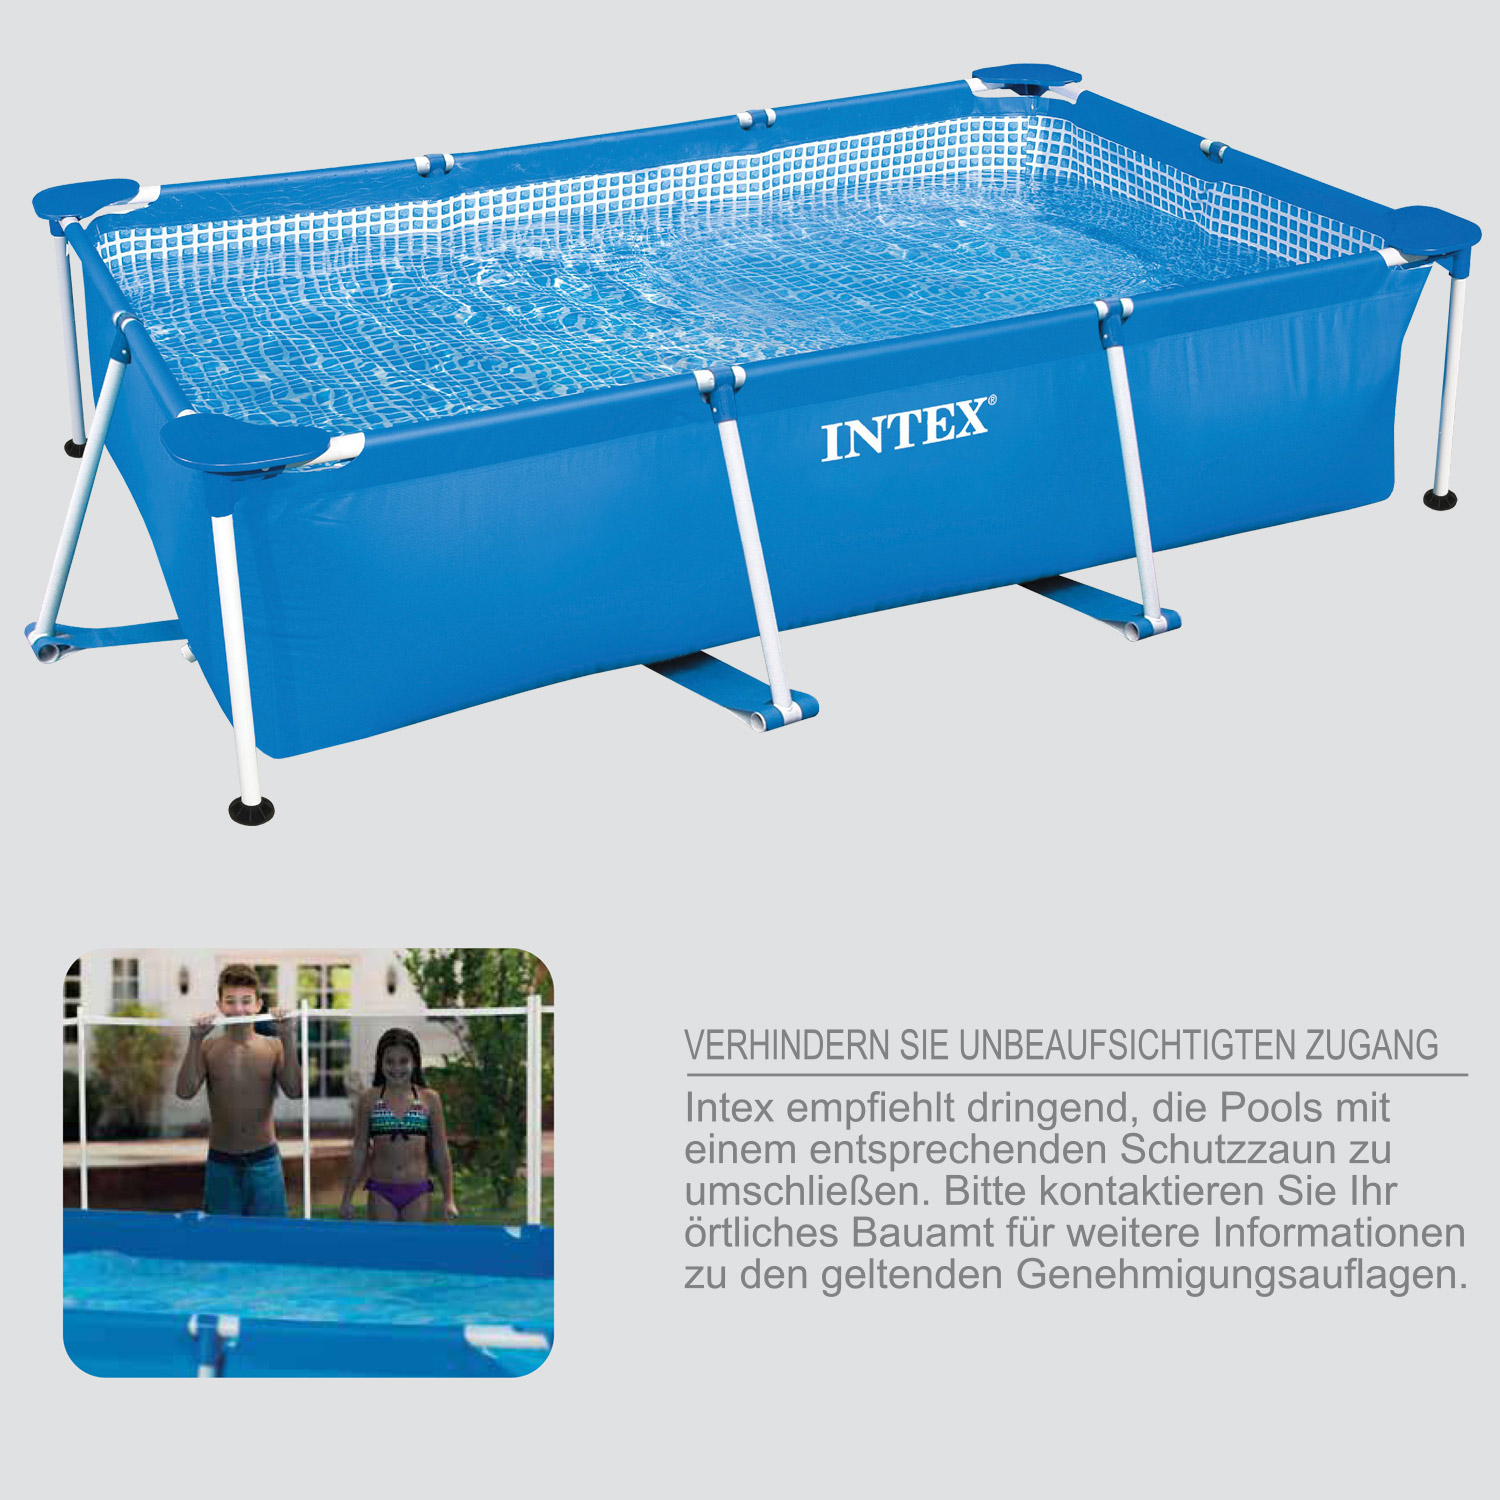 intex 260x160x65 swimming pool mit pumpe schwimmbecken frame stahlwandbecken ebay. Black Bedroom Furniture Sets. Home Design Ideas